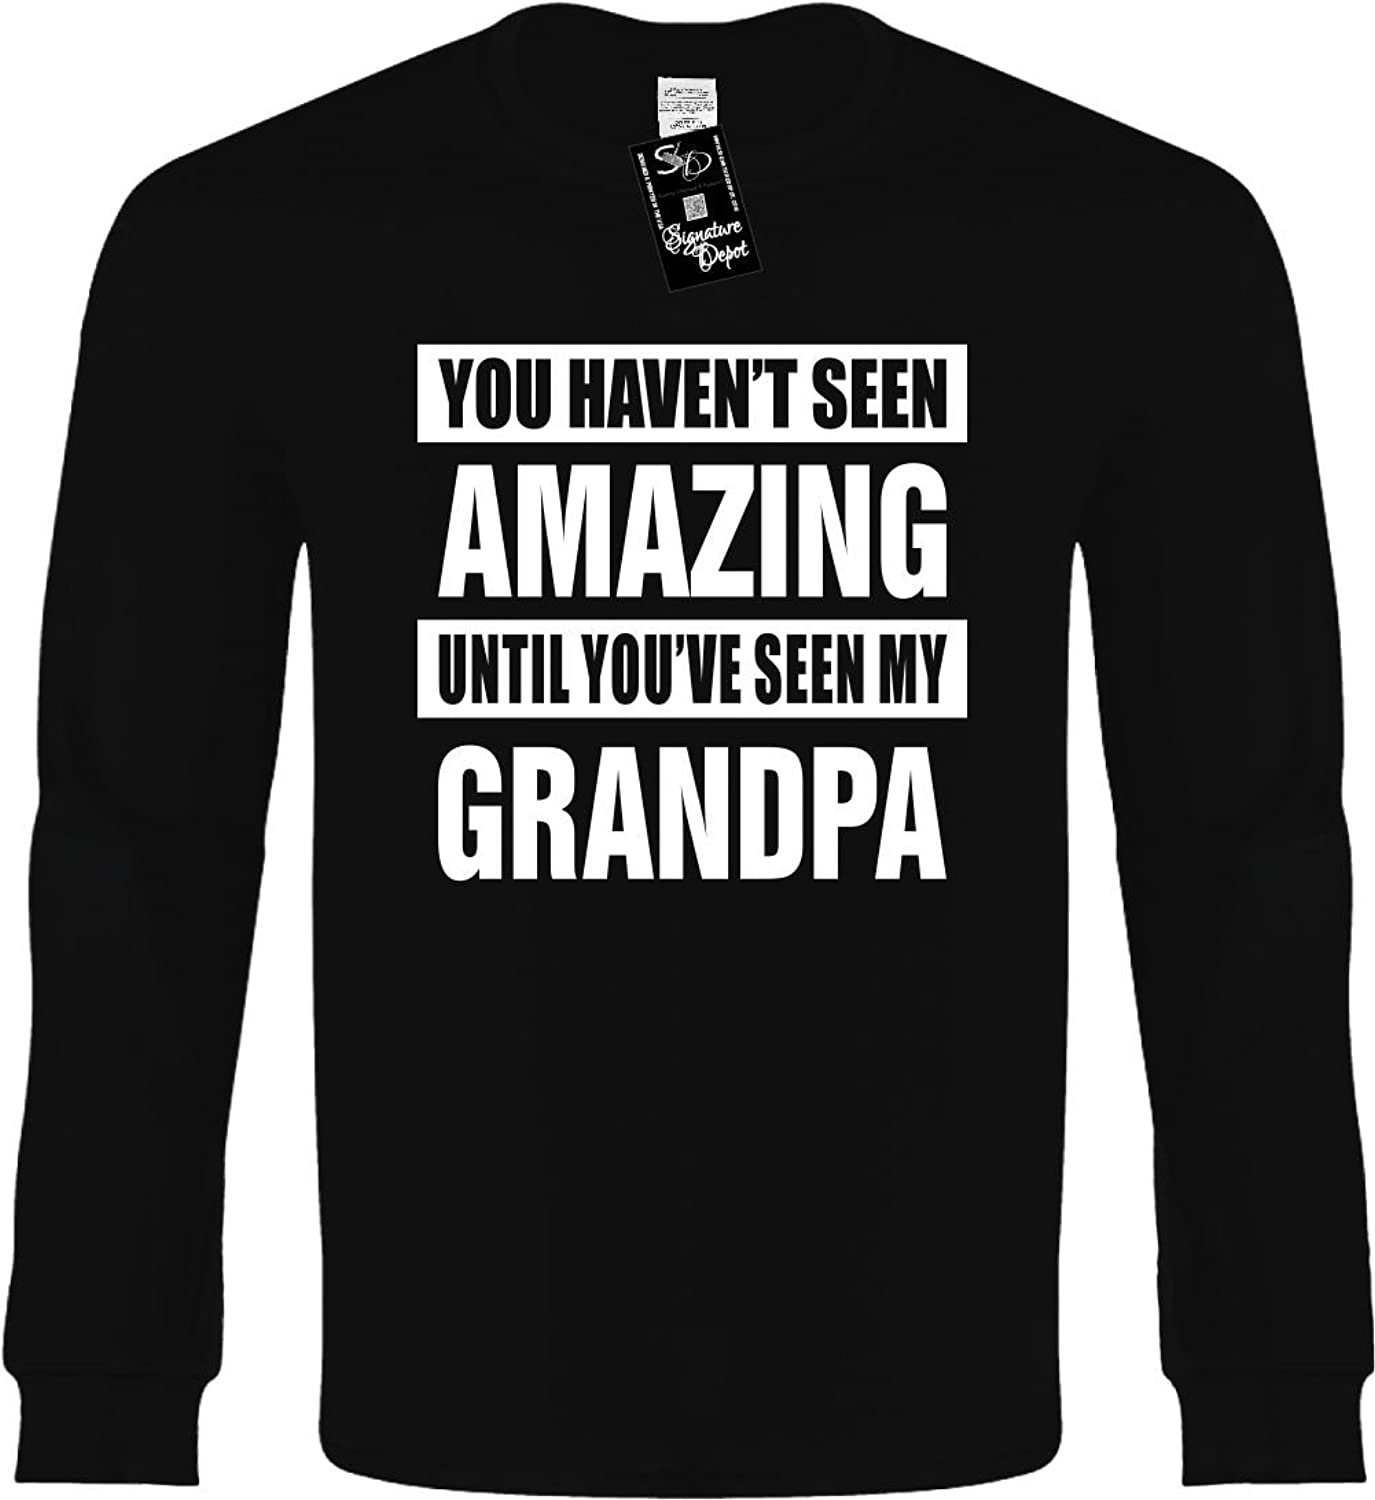 Amazon.com: Funny Long Sleeve T-Shirt (HAVENT SEEN AMAZING / MY GRANDPA) Novelty Shirt: Clothing